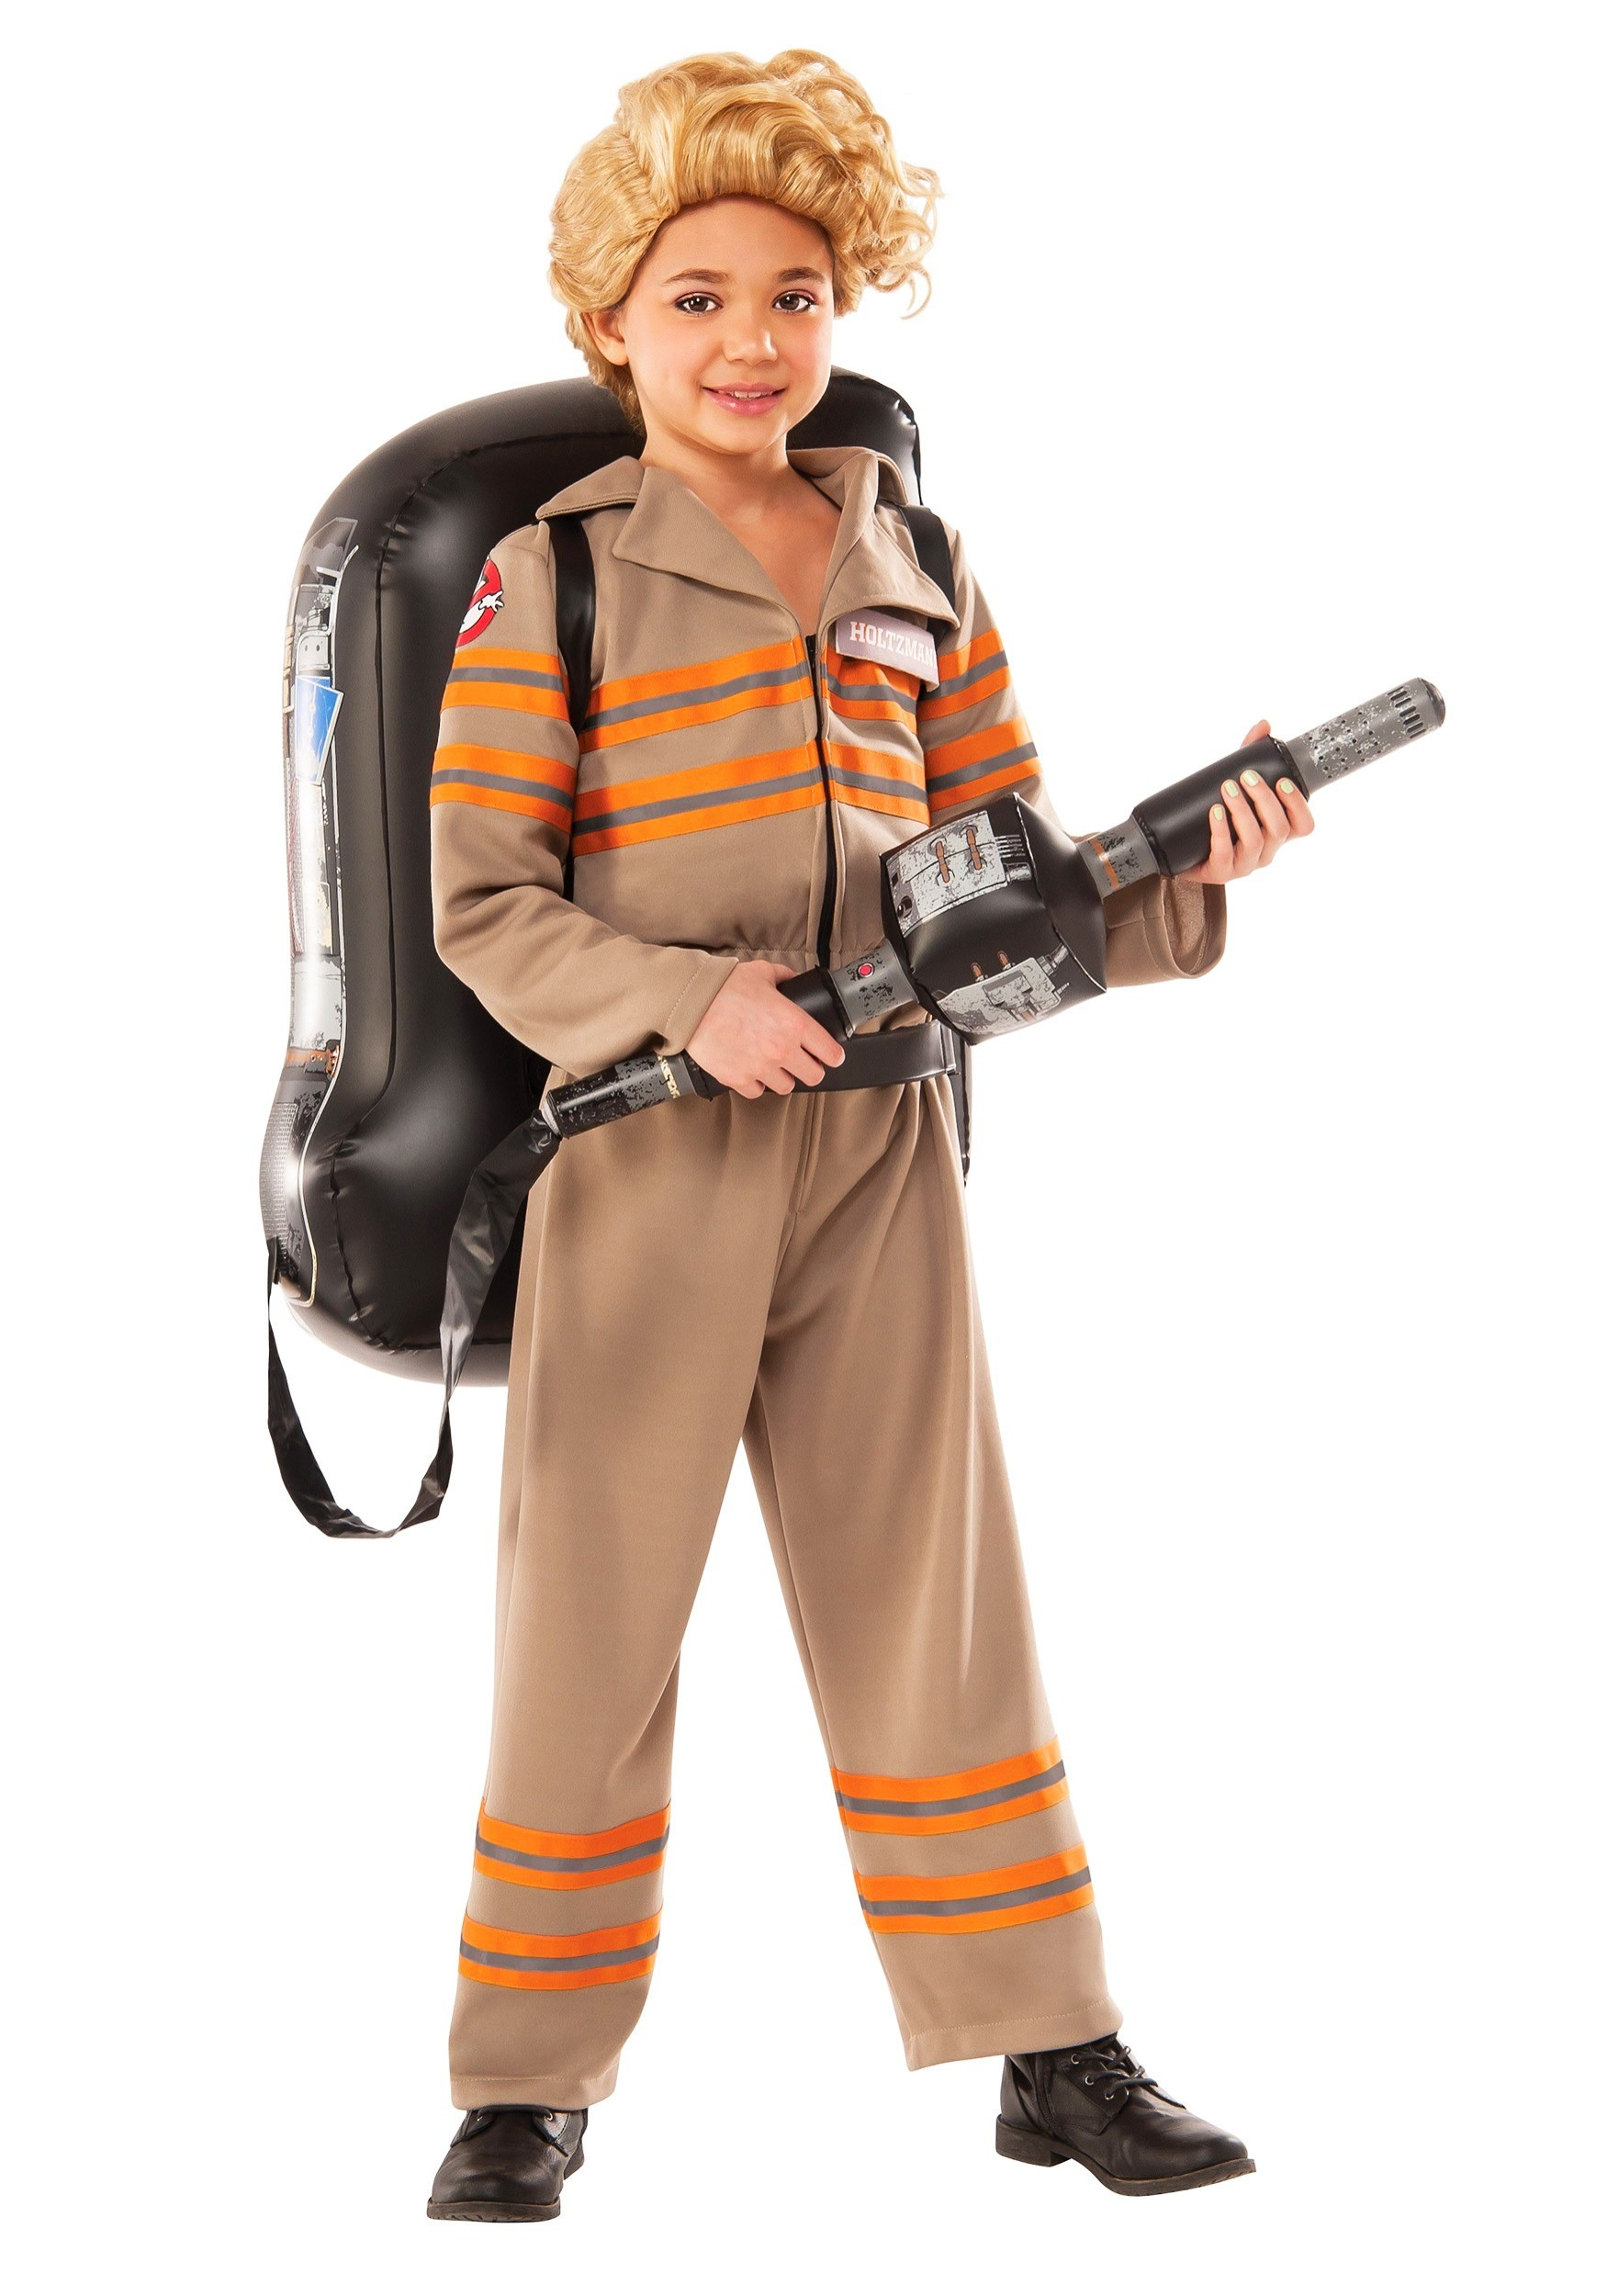 Girls Deluxe Costume From The Ghostbusters Movie